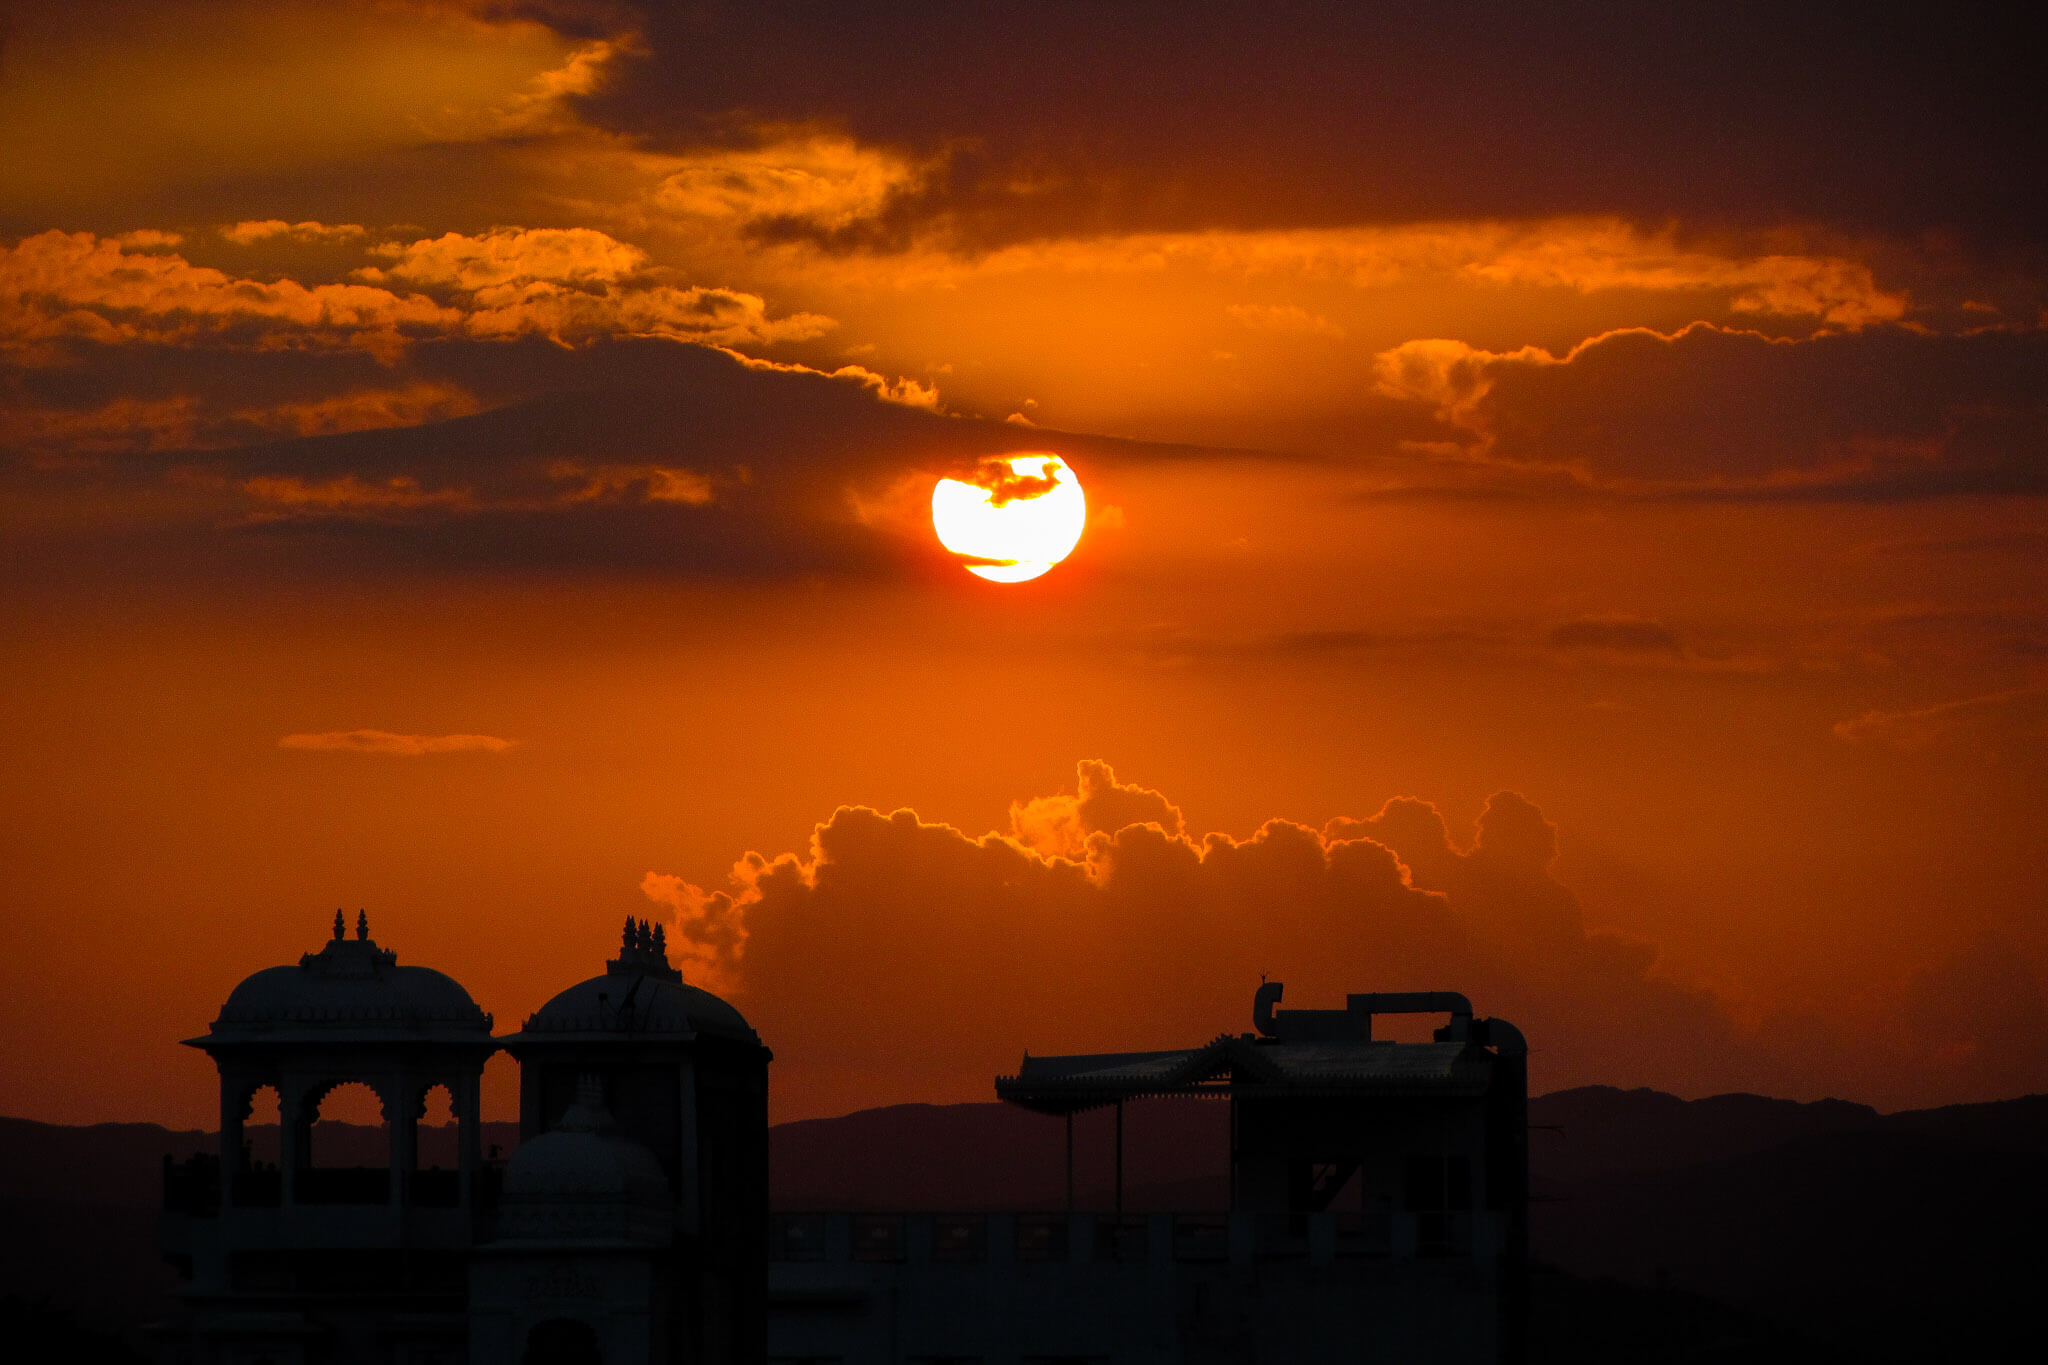 Sunset of wonders at Udaipur